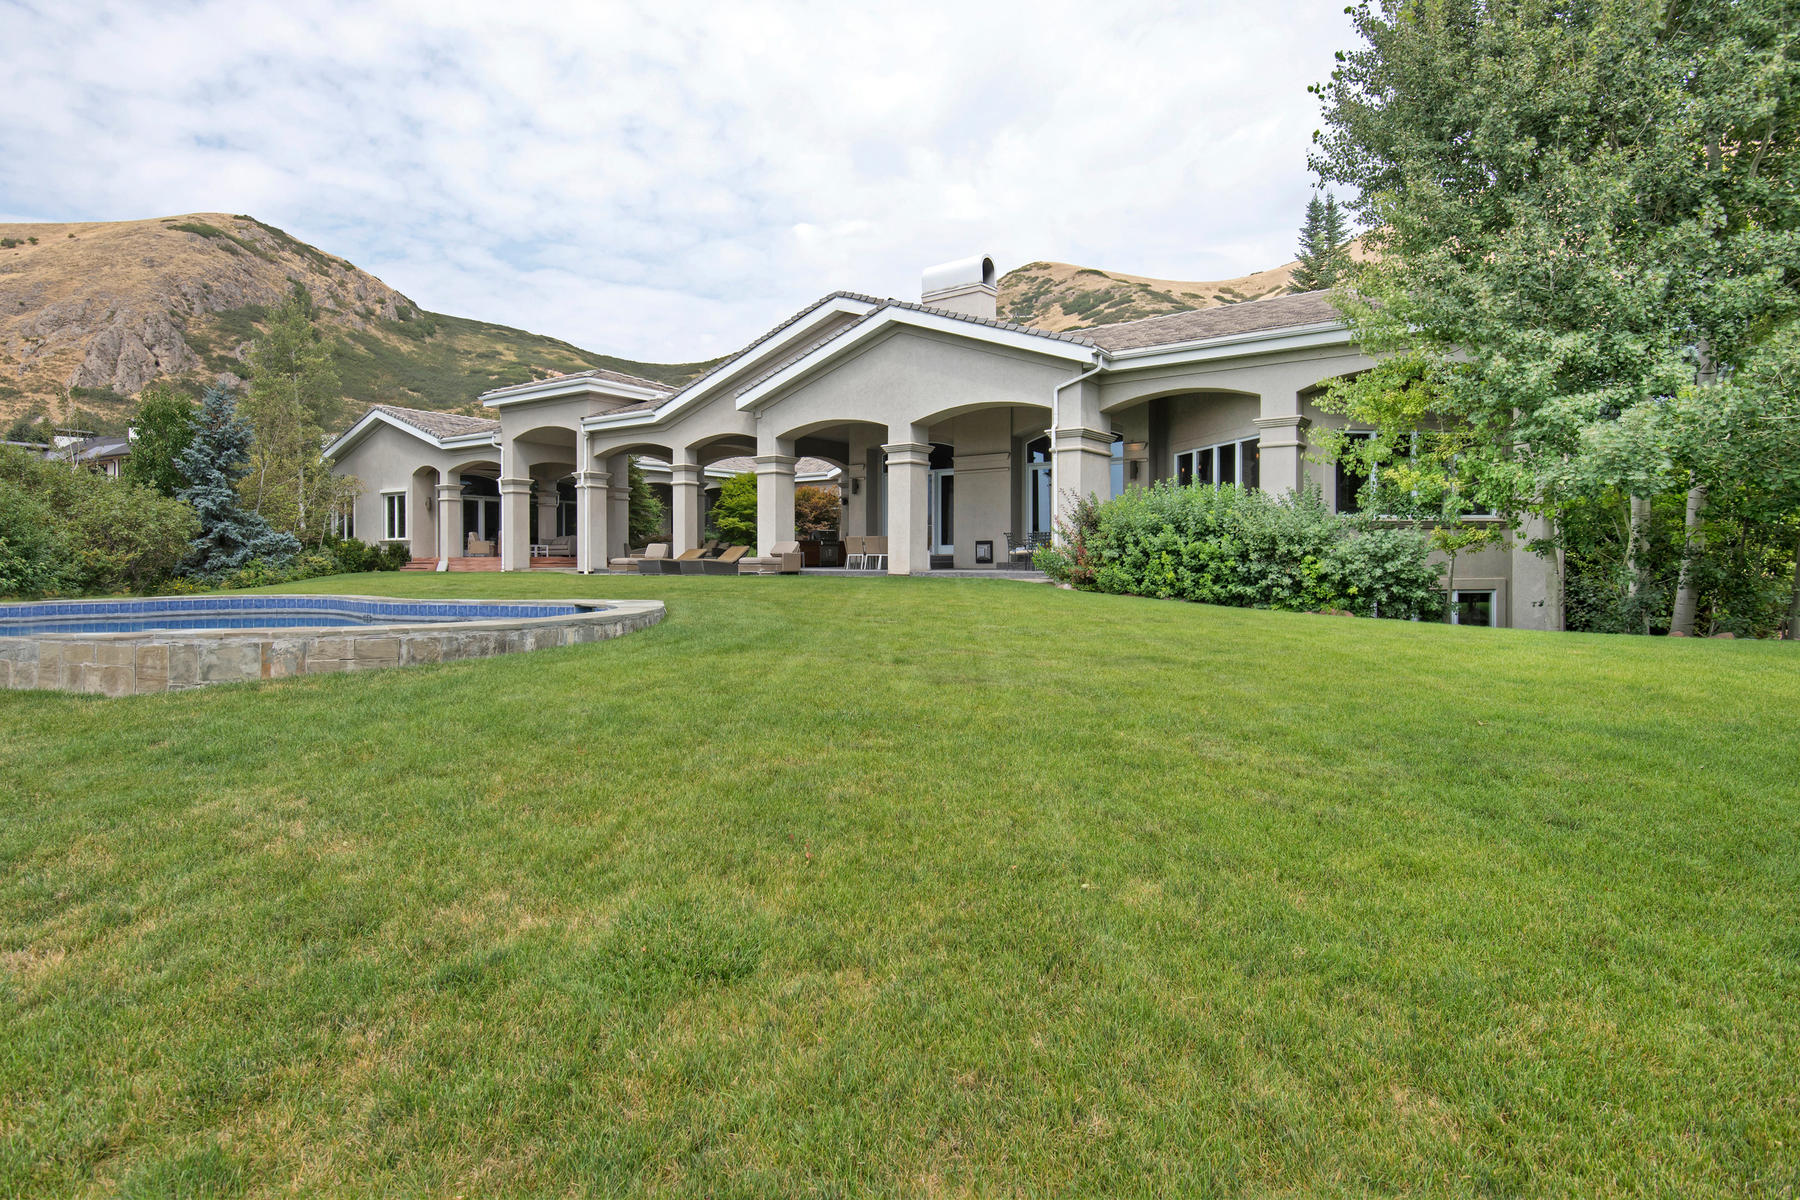 Additional photo for property listing at Stunning Remodel of a Classic Estate 378 E Capitol Oaks Ln Salt Lake City, Utah 84102 United States